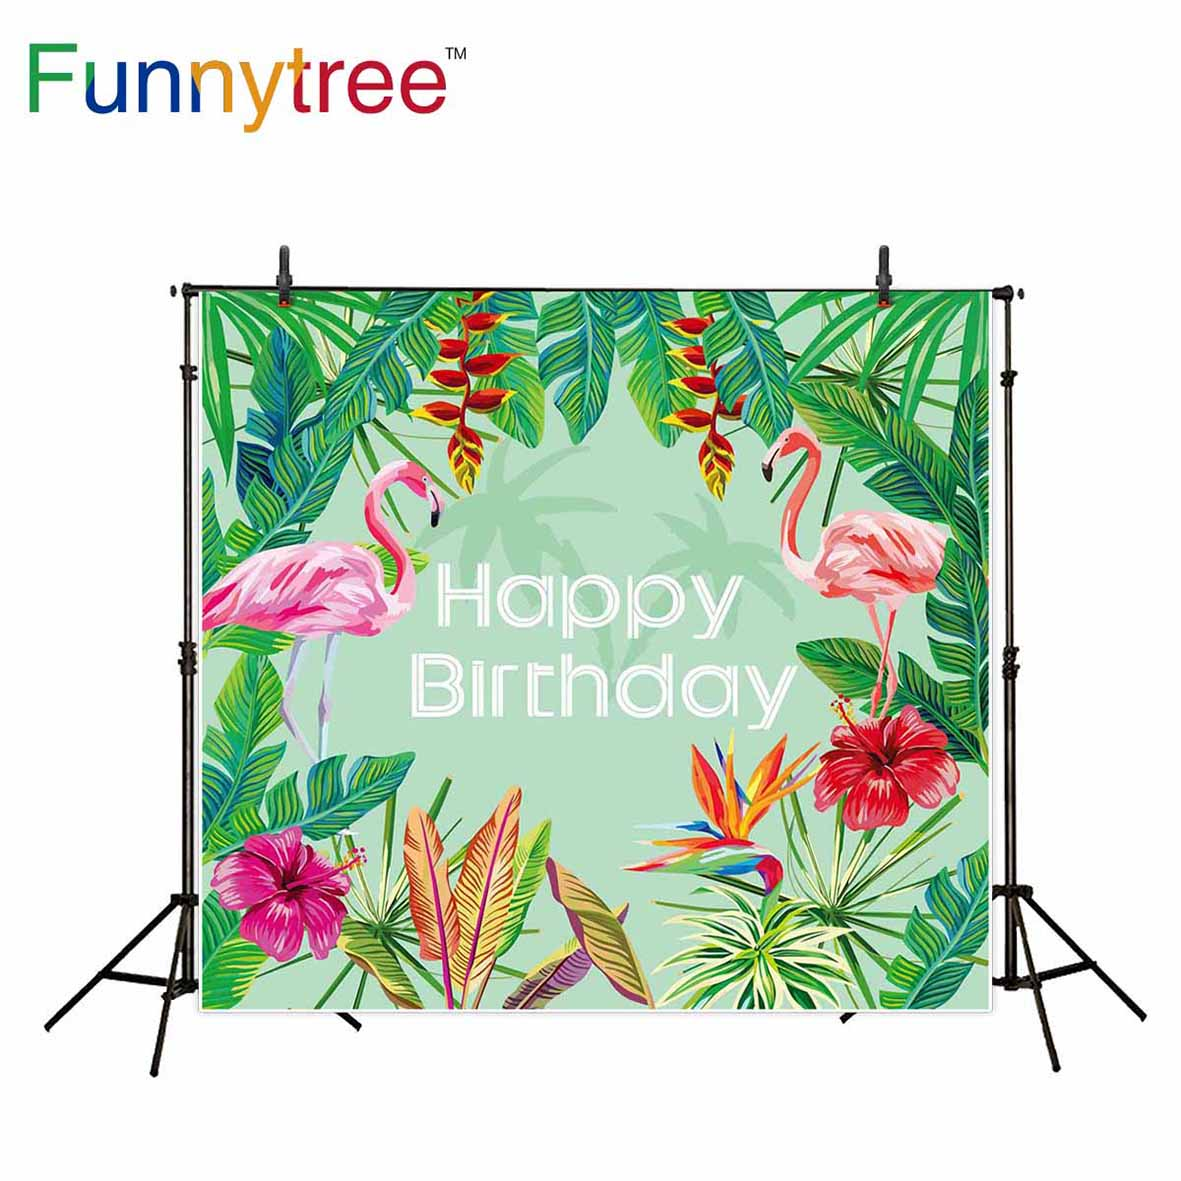 Funnytree studio backgrounds photography flamingo tropical leaves flower birthday professional backdrop photo prop photobooth